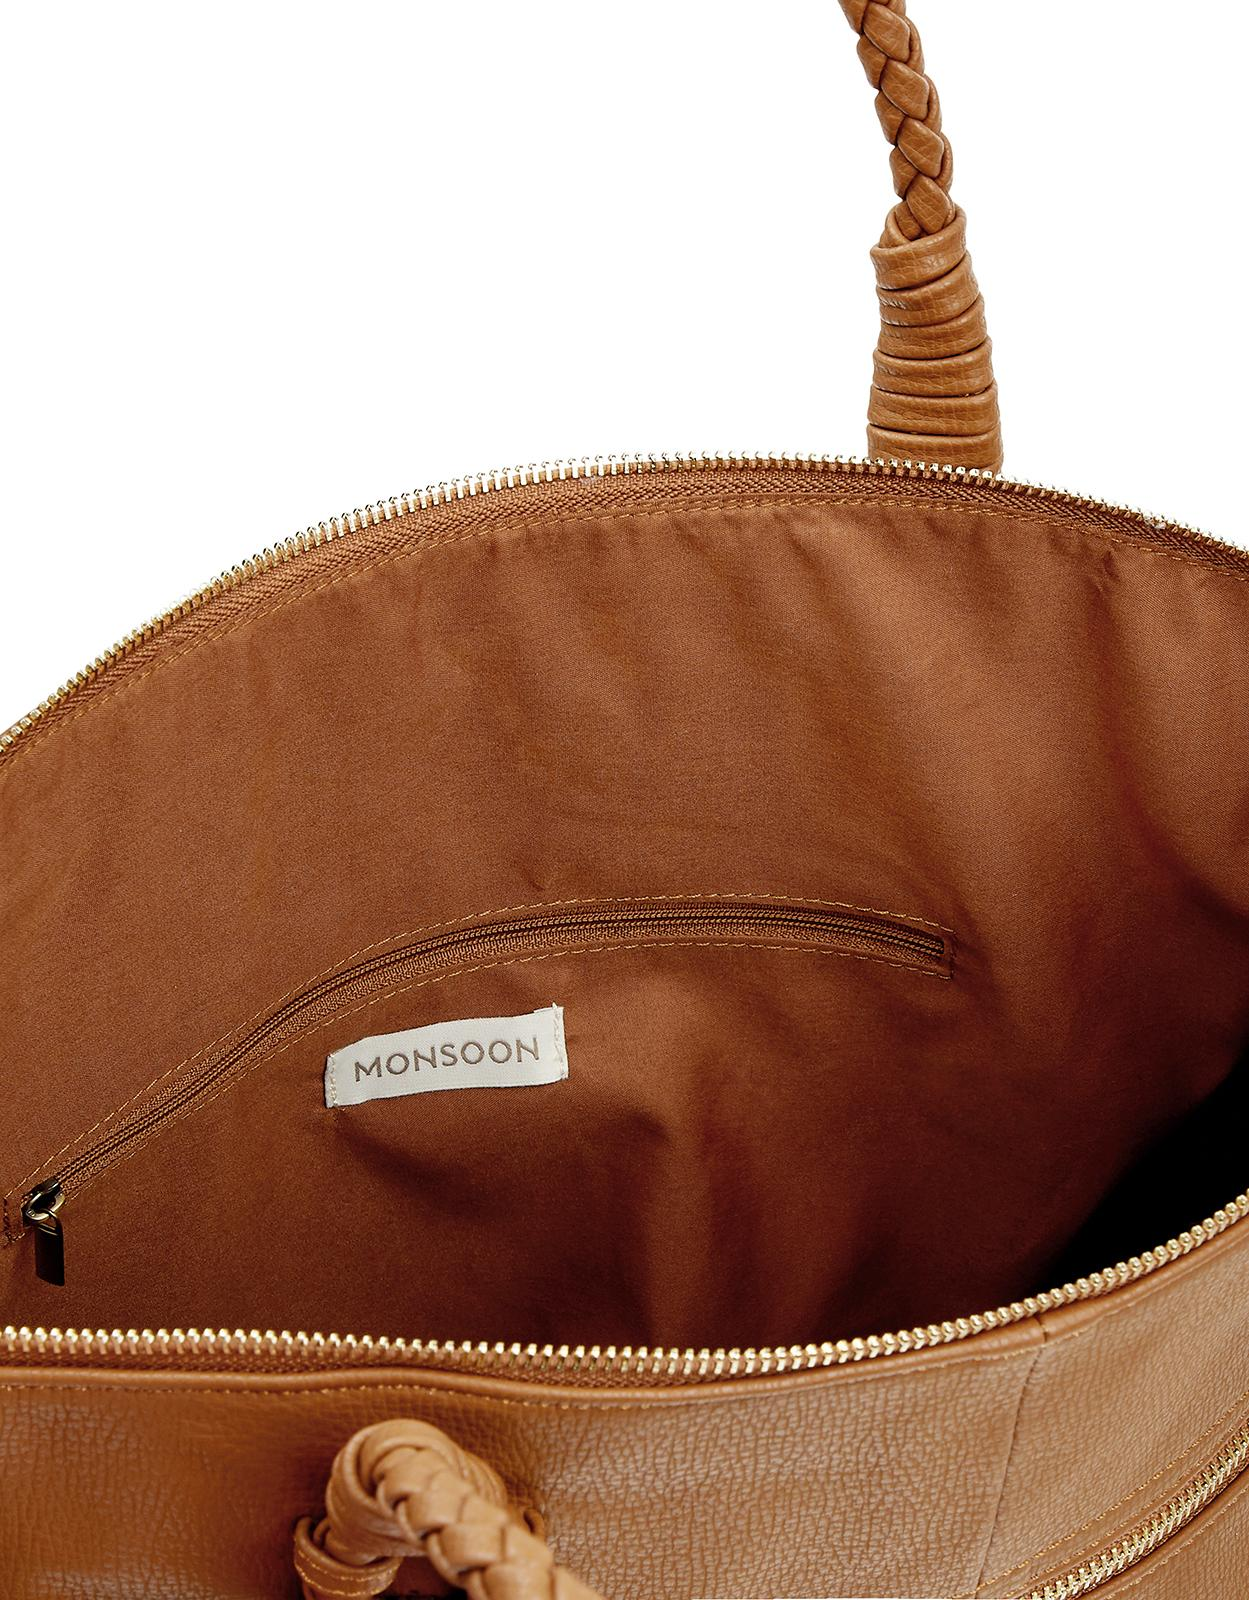 Monsoon Leather Cora Casual Plait Handle Tote Bag in Tan (Brown)